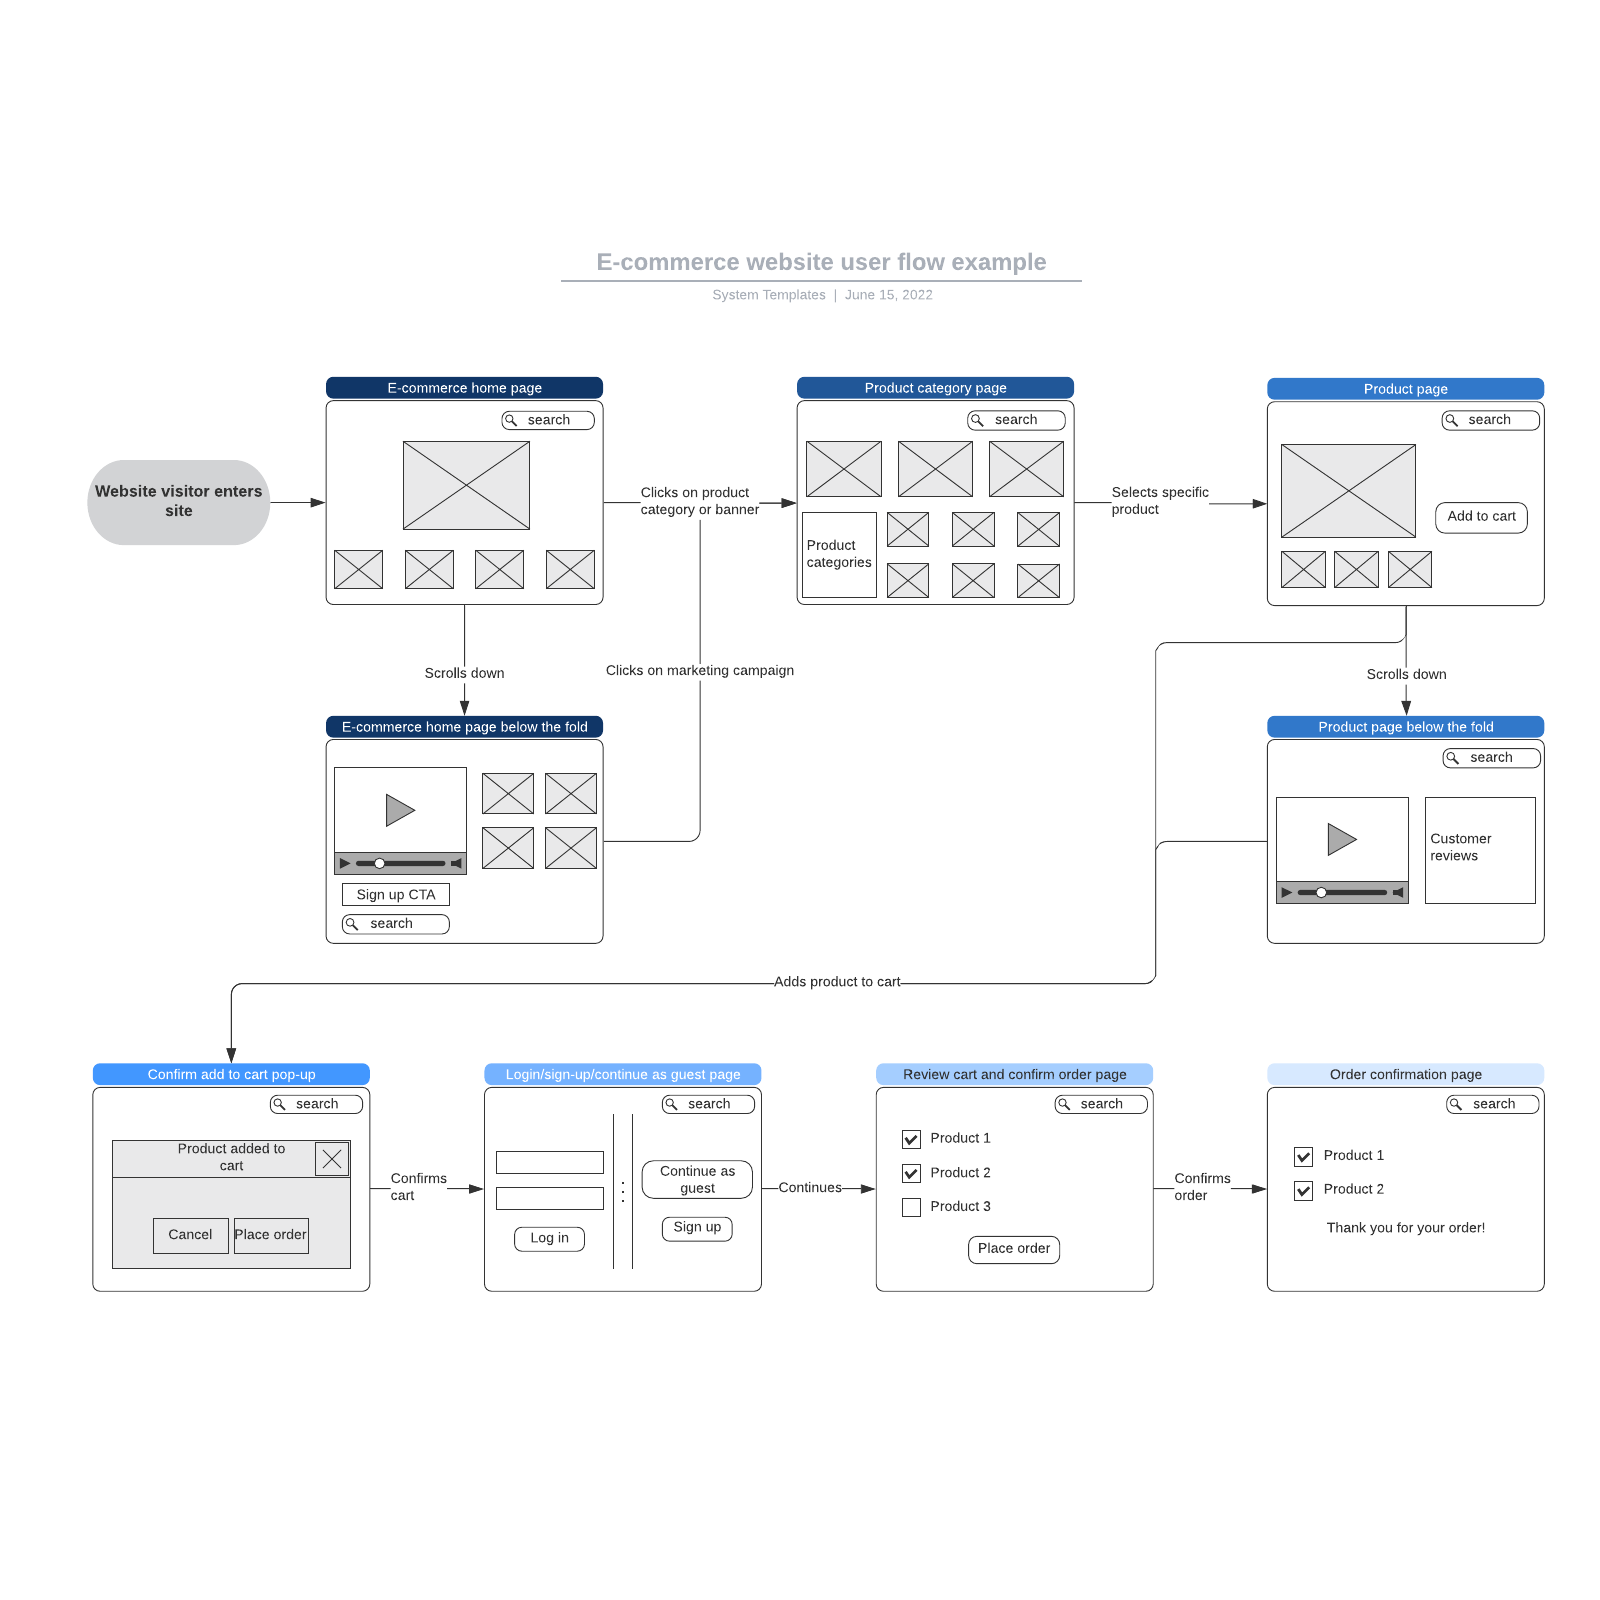 E-commerce website user flow example